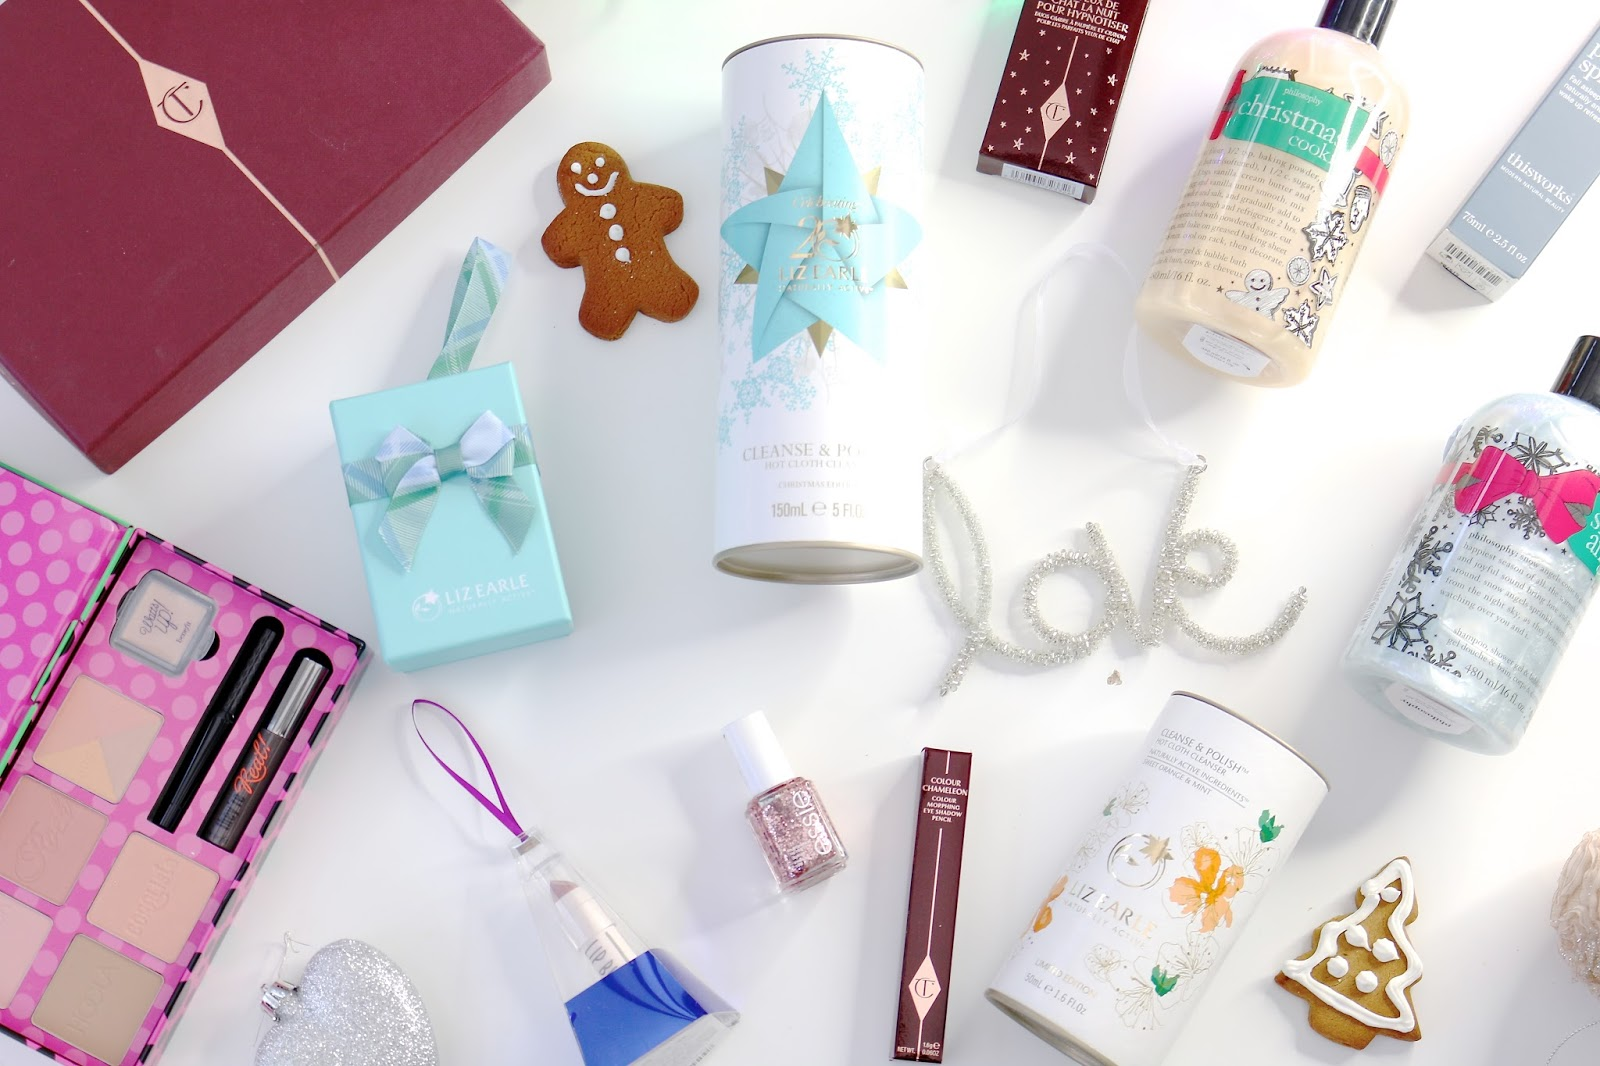 Beauty, Christmas, Christmas present ideas, christmas gift ideas, beauty presents, beauty sets, John Lewis, Liz Earle, Soap and Glory, what to buy people at christmas,